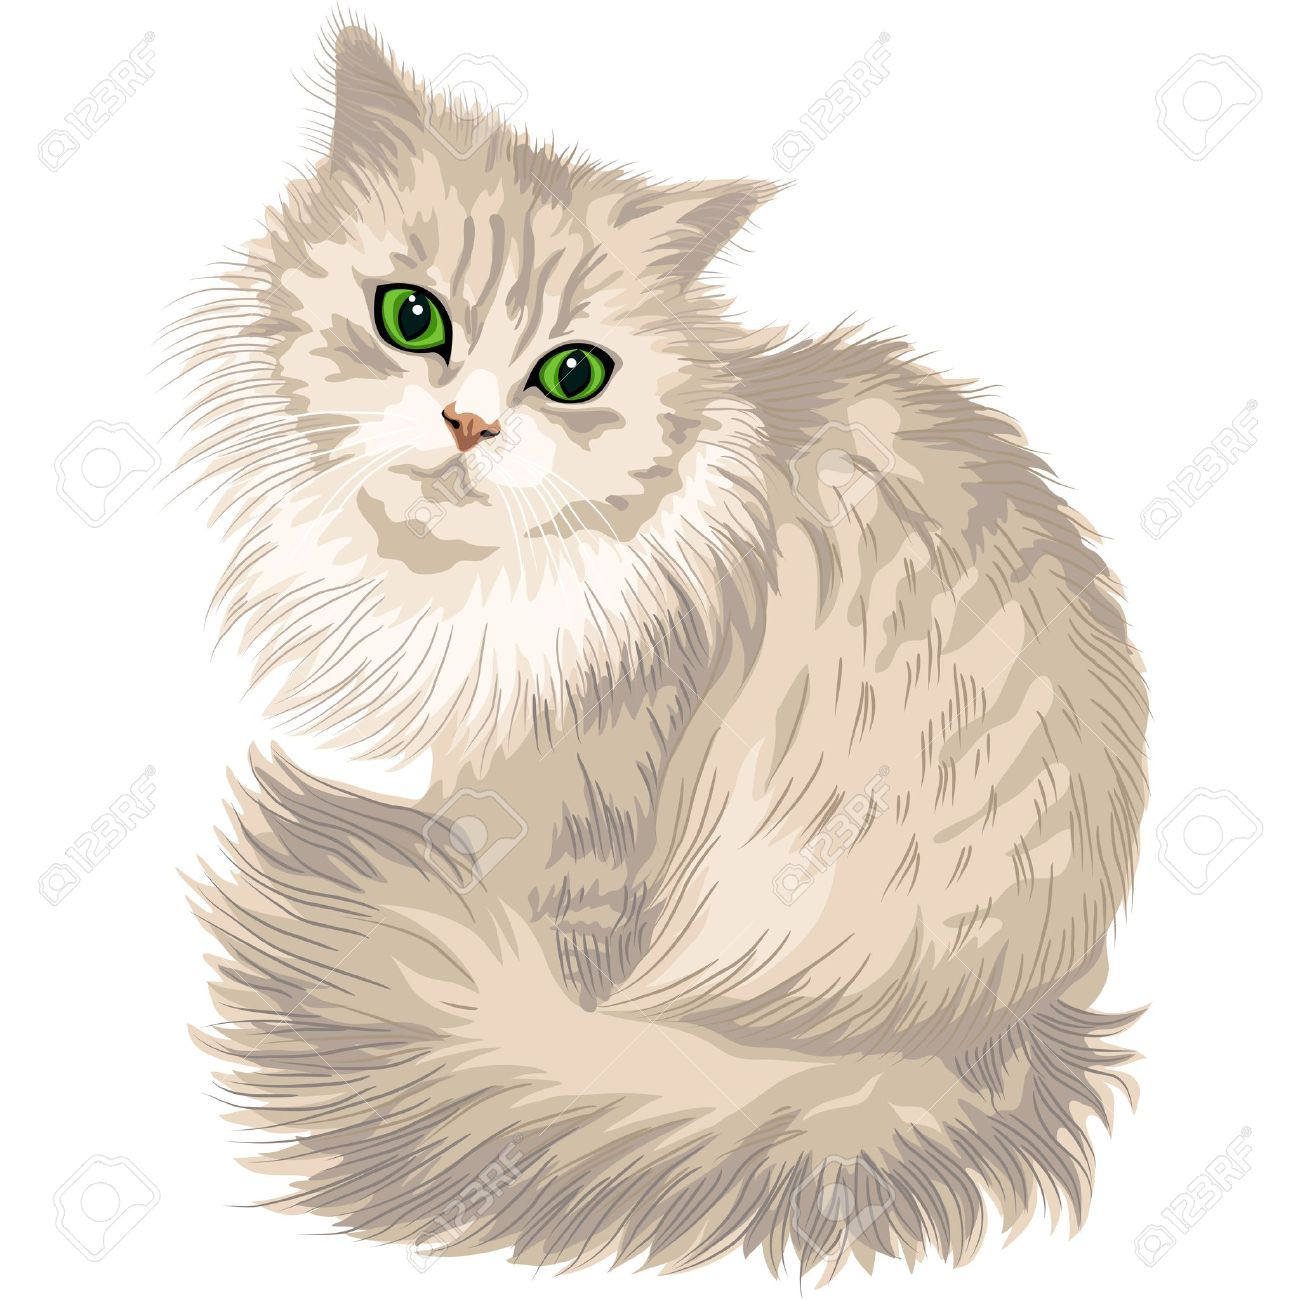 Fluffy clipart #10, Download drawings